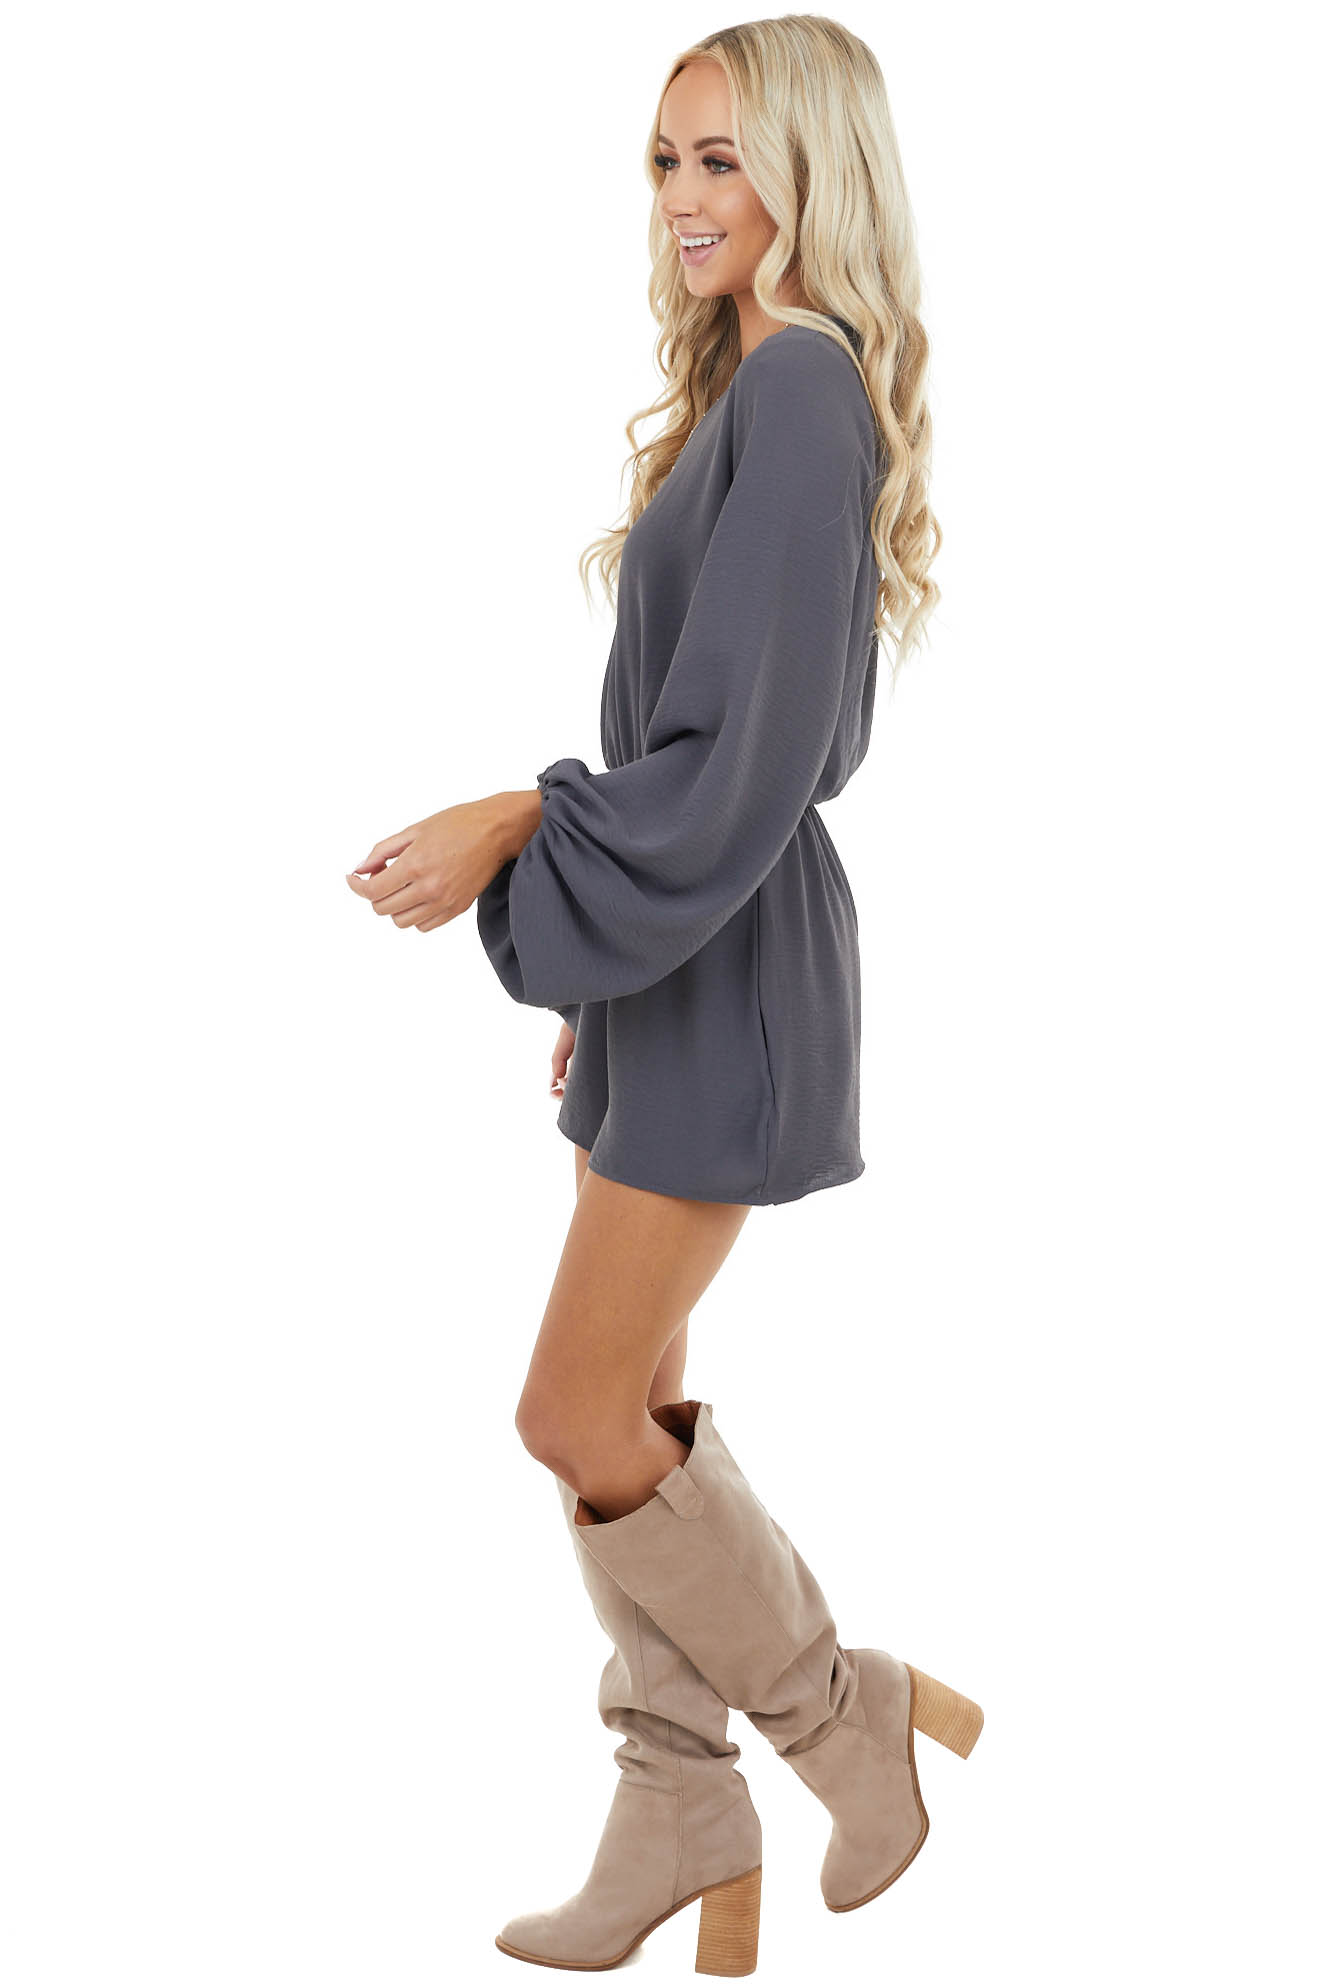 Stormy Grey Romper with Long Puff Sleeve and Side Pockets